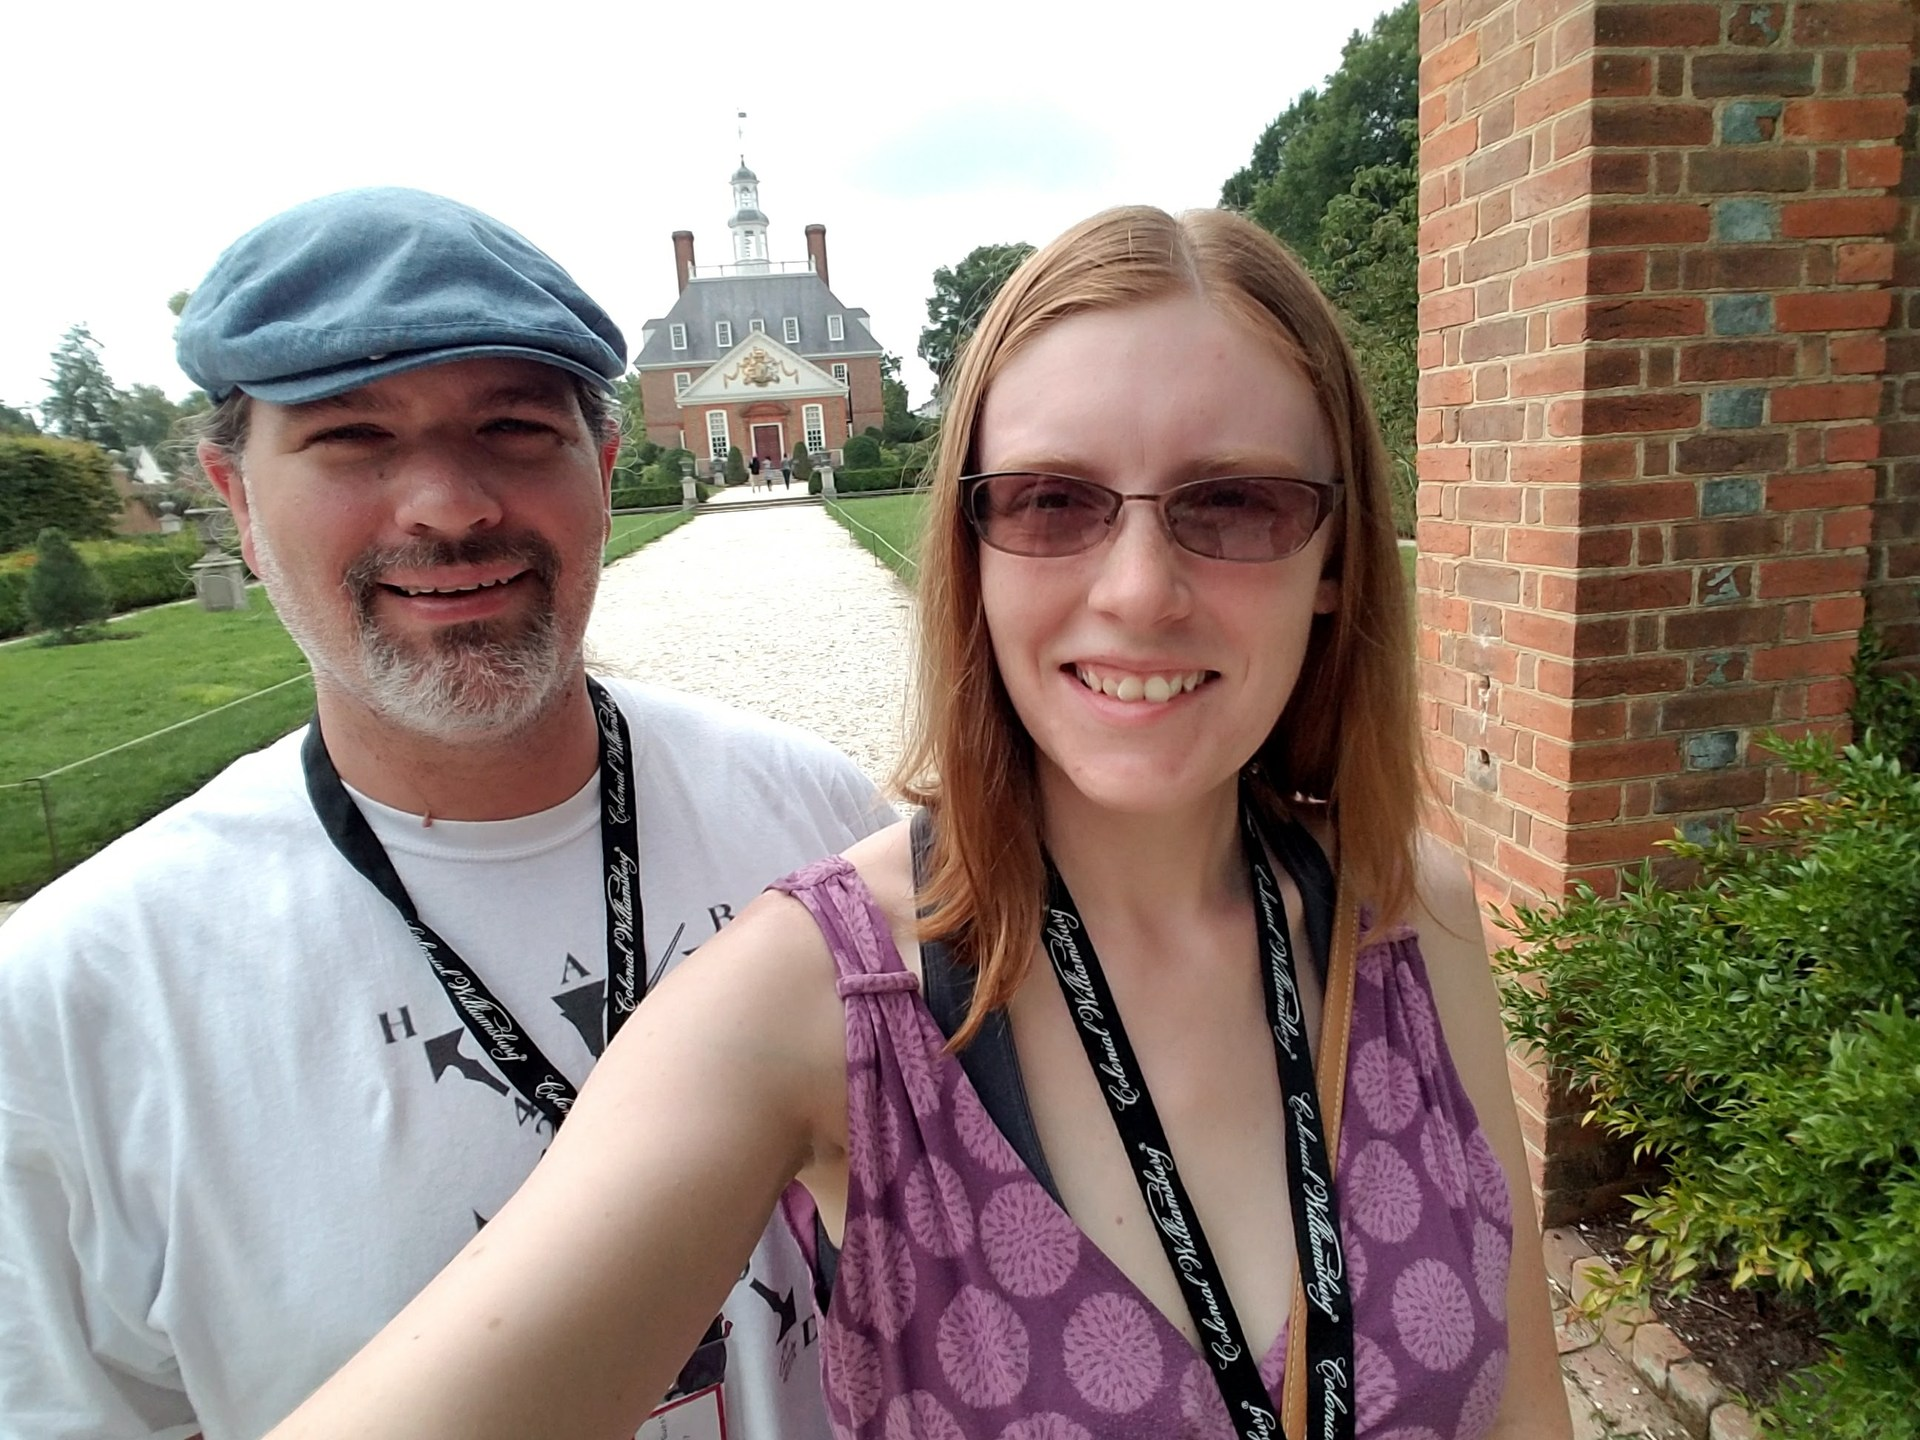 Man with hat and a white and black beard stands next to a woman with strawberry blonde hair and sun glasses with a colonial-style palace in the far background